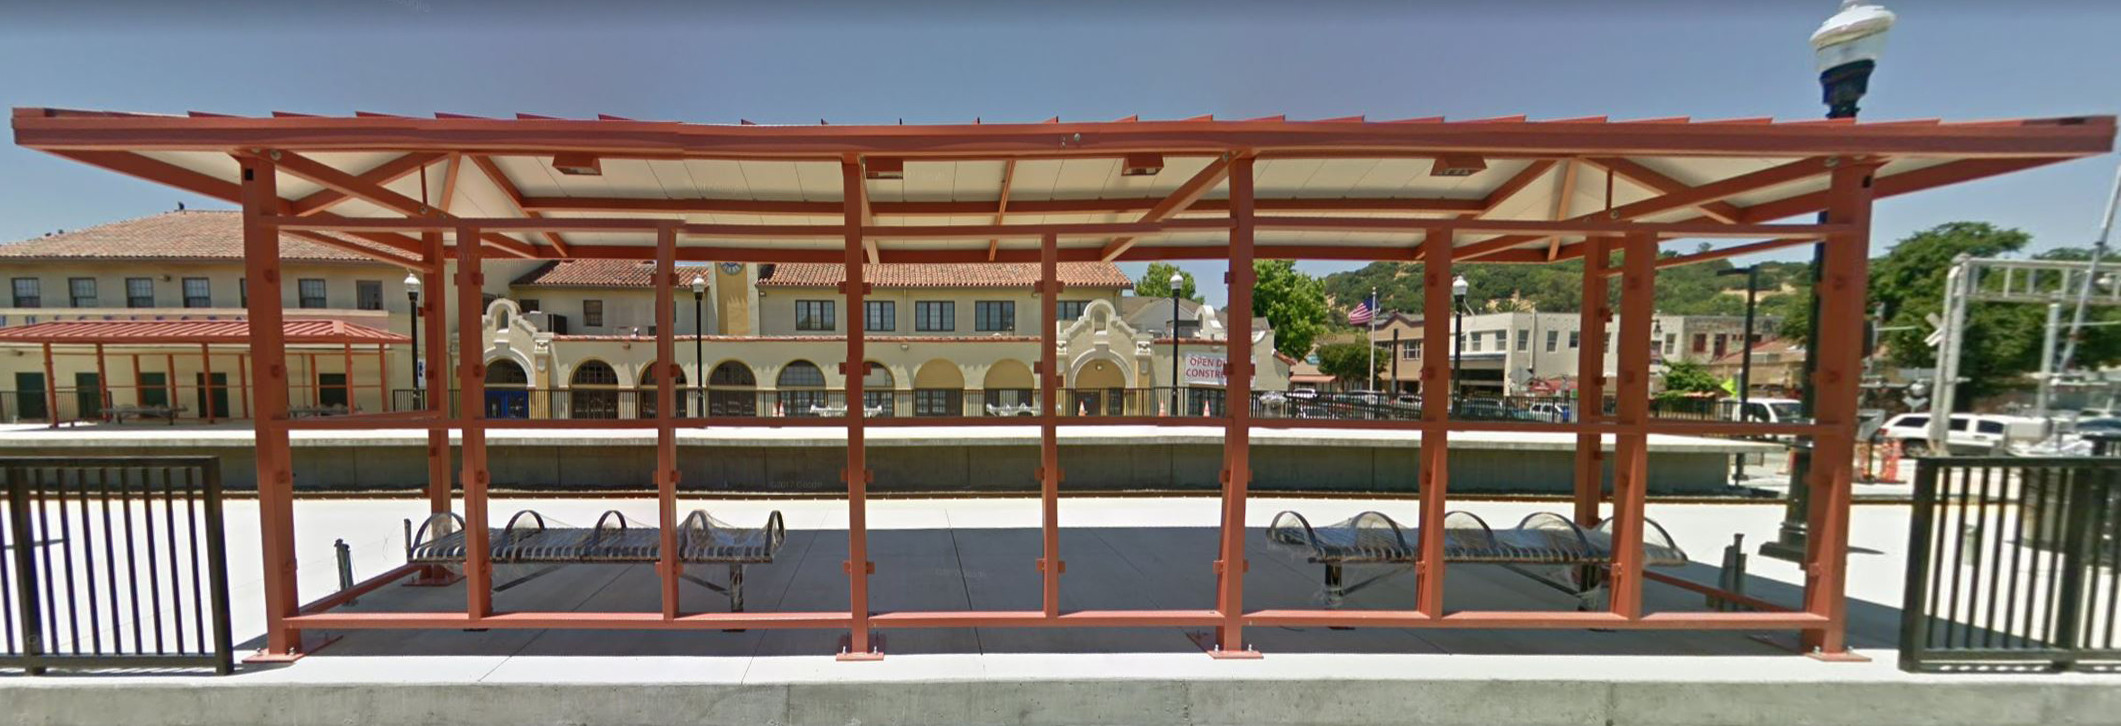 San Rafael Station smart train SMART Train Is Now Available San Rafael Station 1